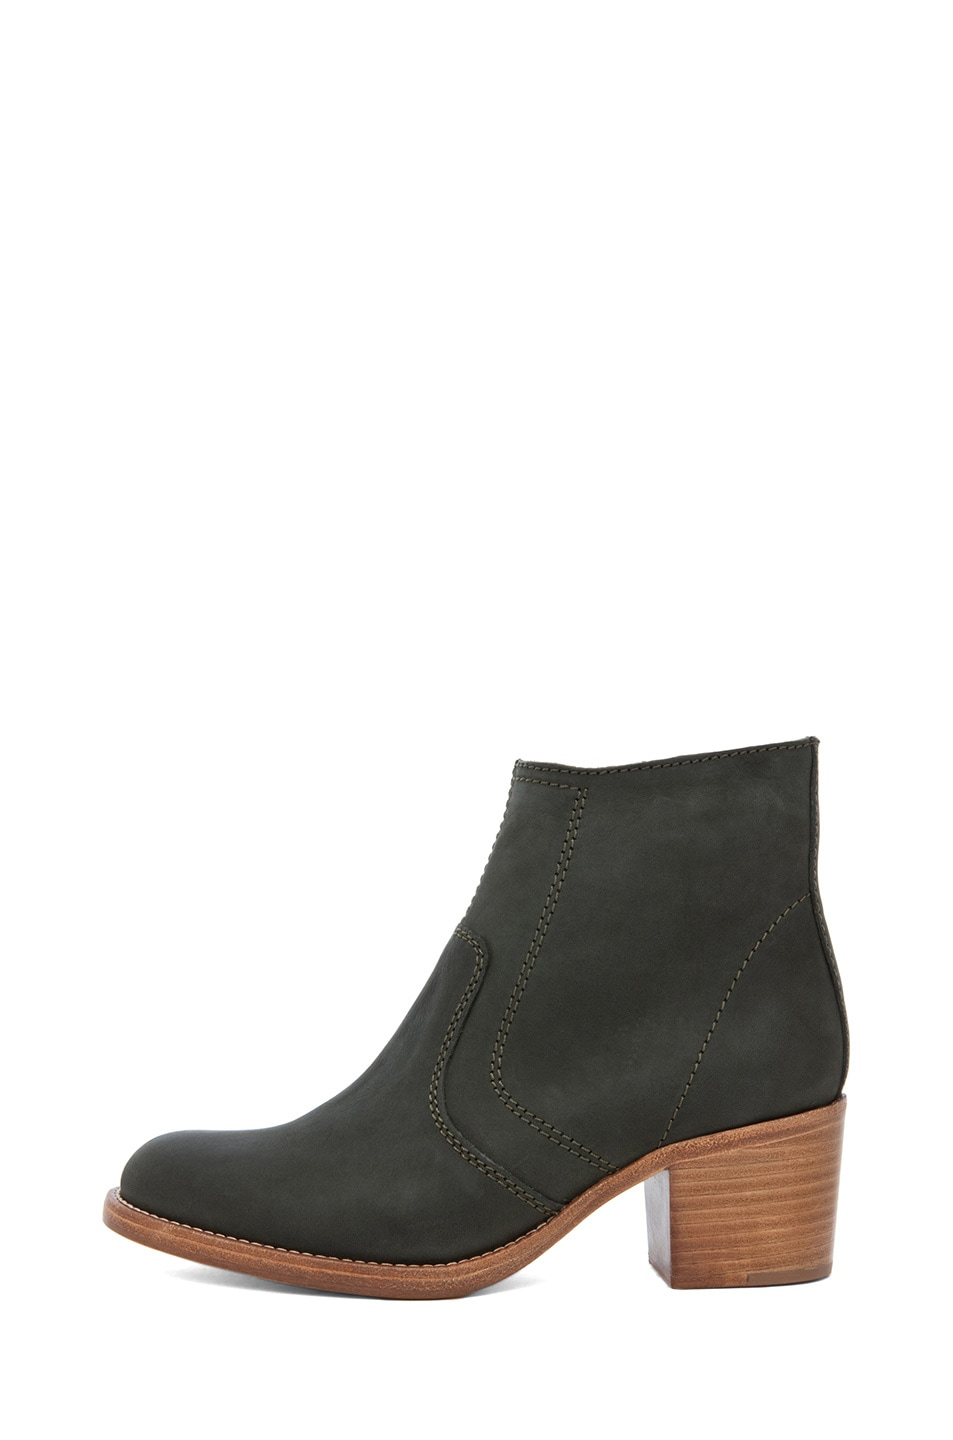 Image 1 of A.P.C. Camarguaise Boot in Vert Fonce